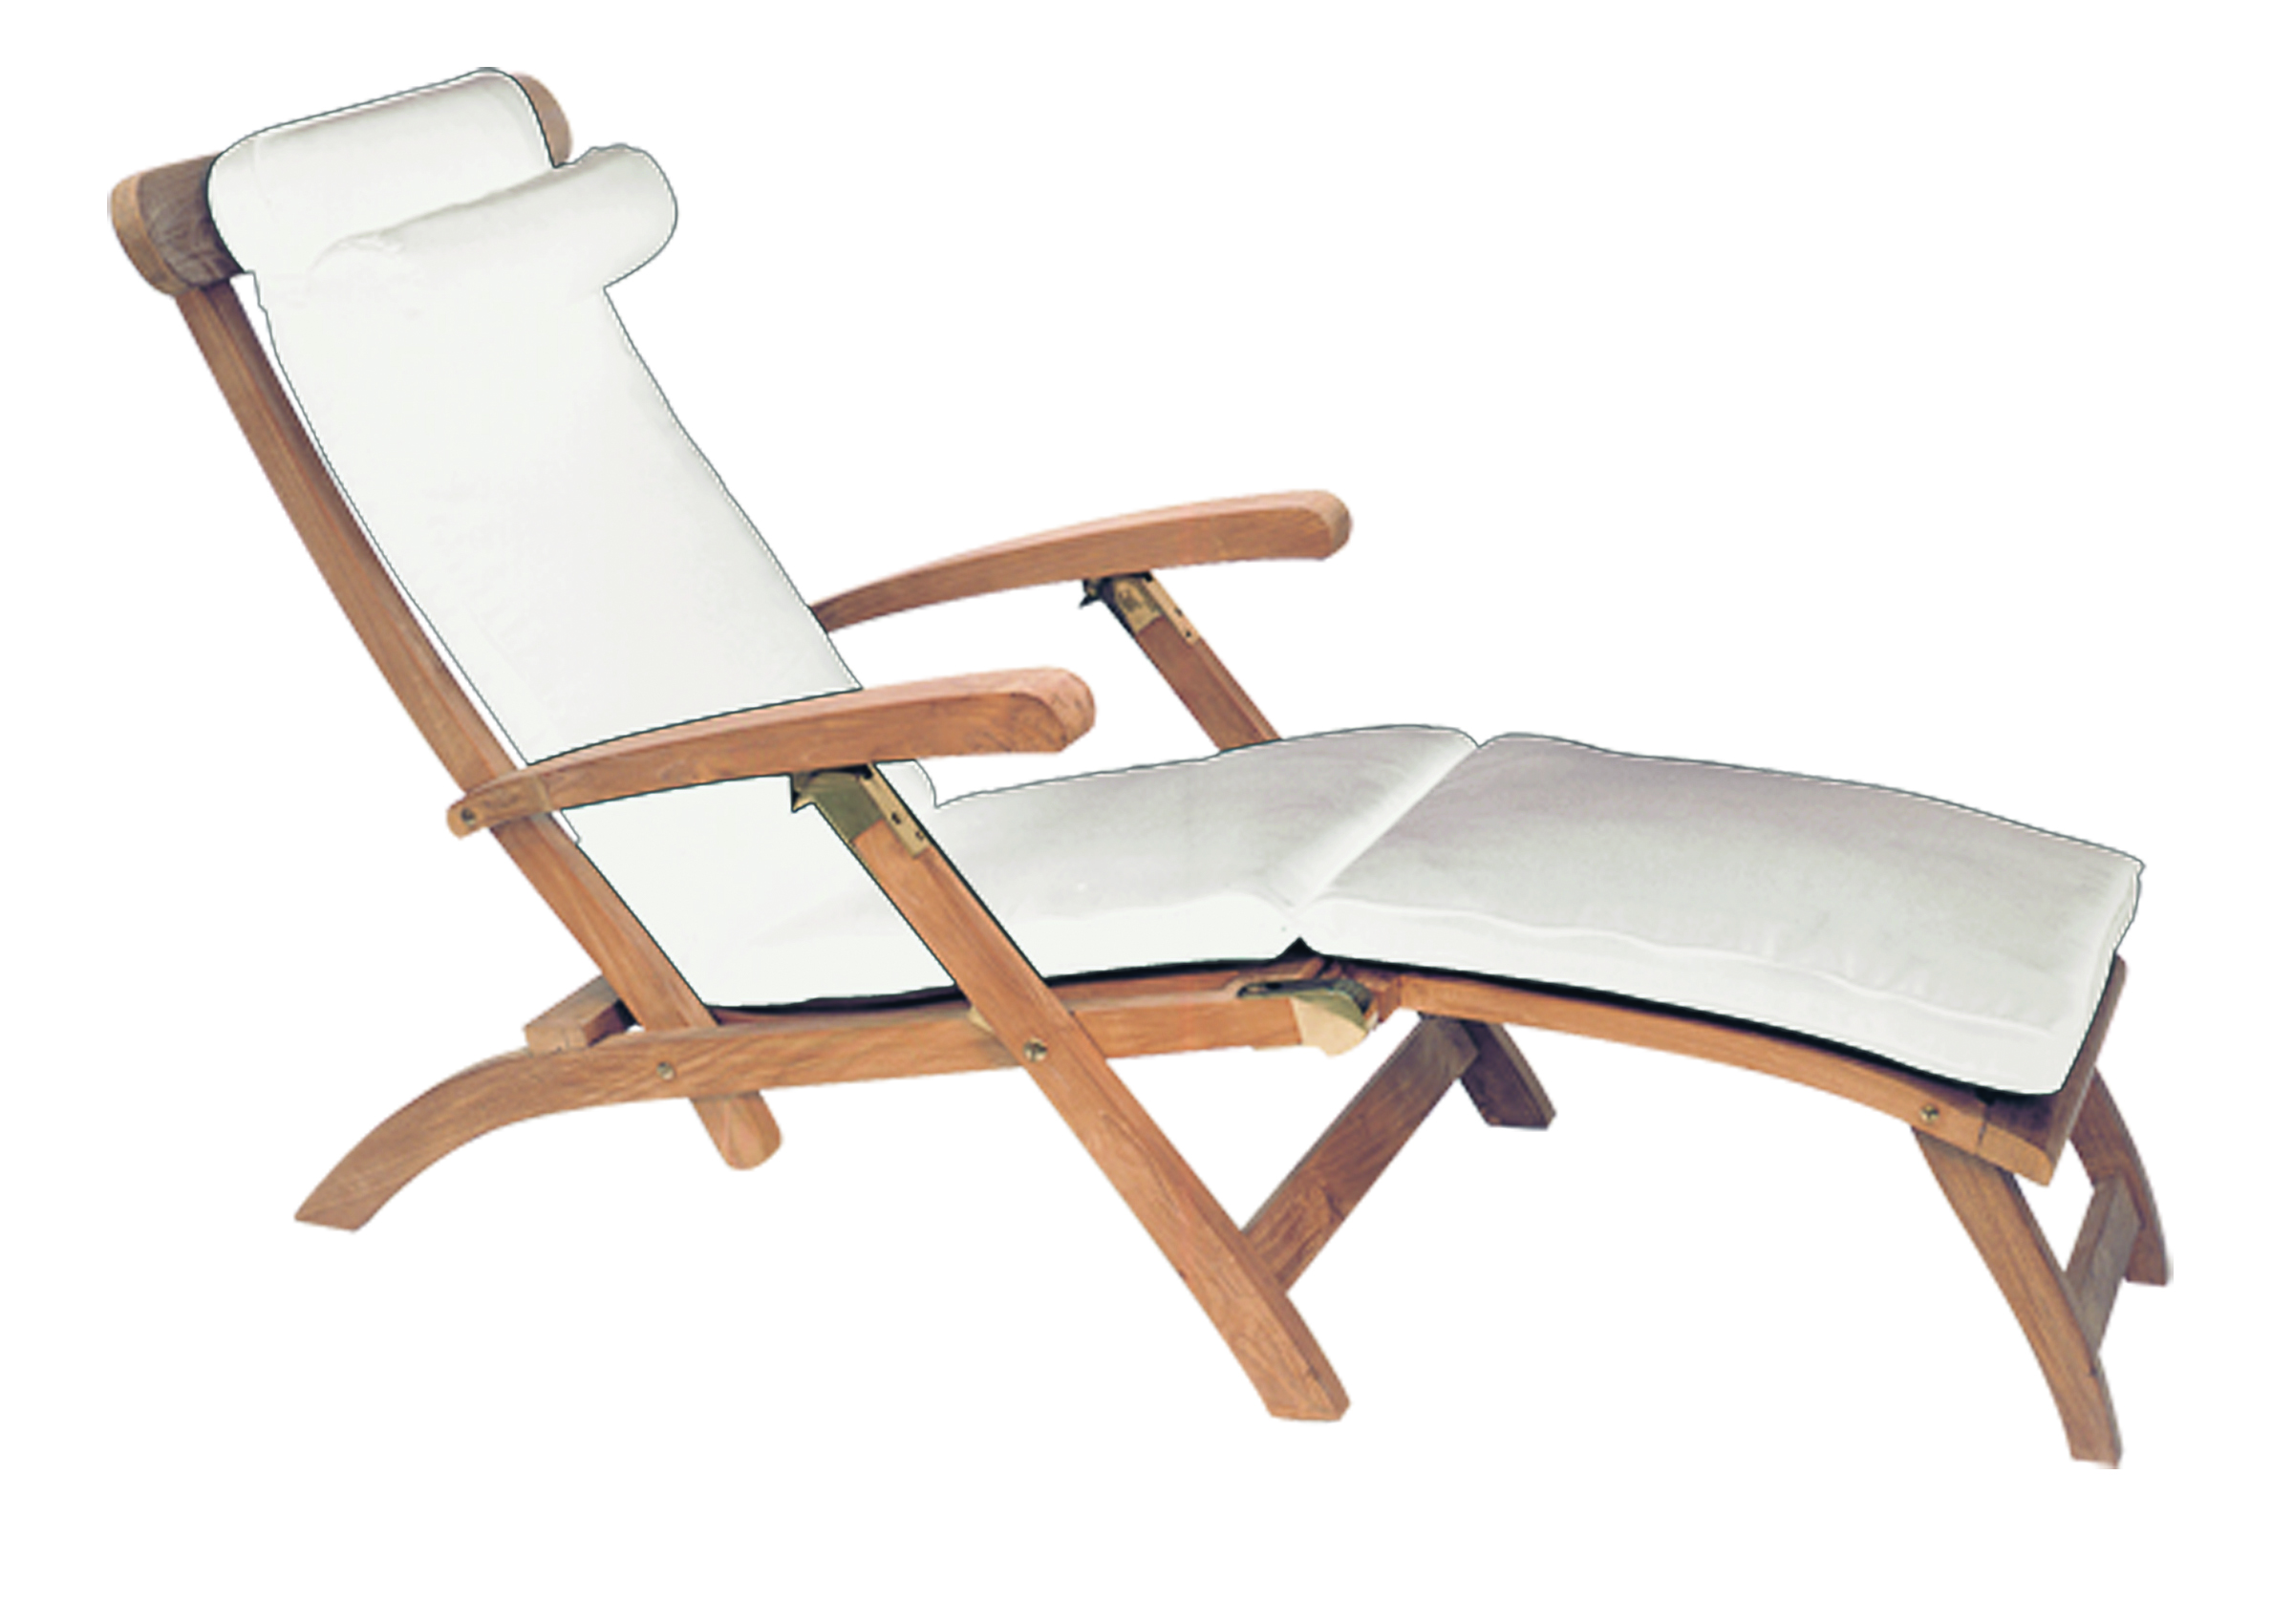 teak steamer chair hammock stands diy american cushion by royal collection outdoor more white